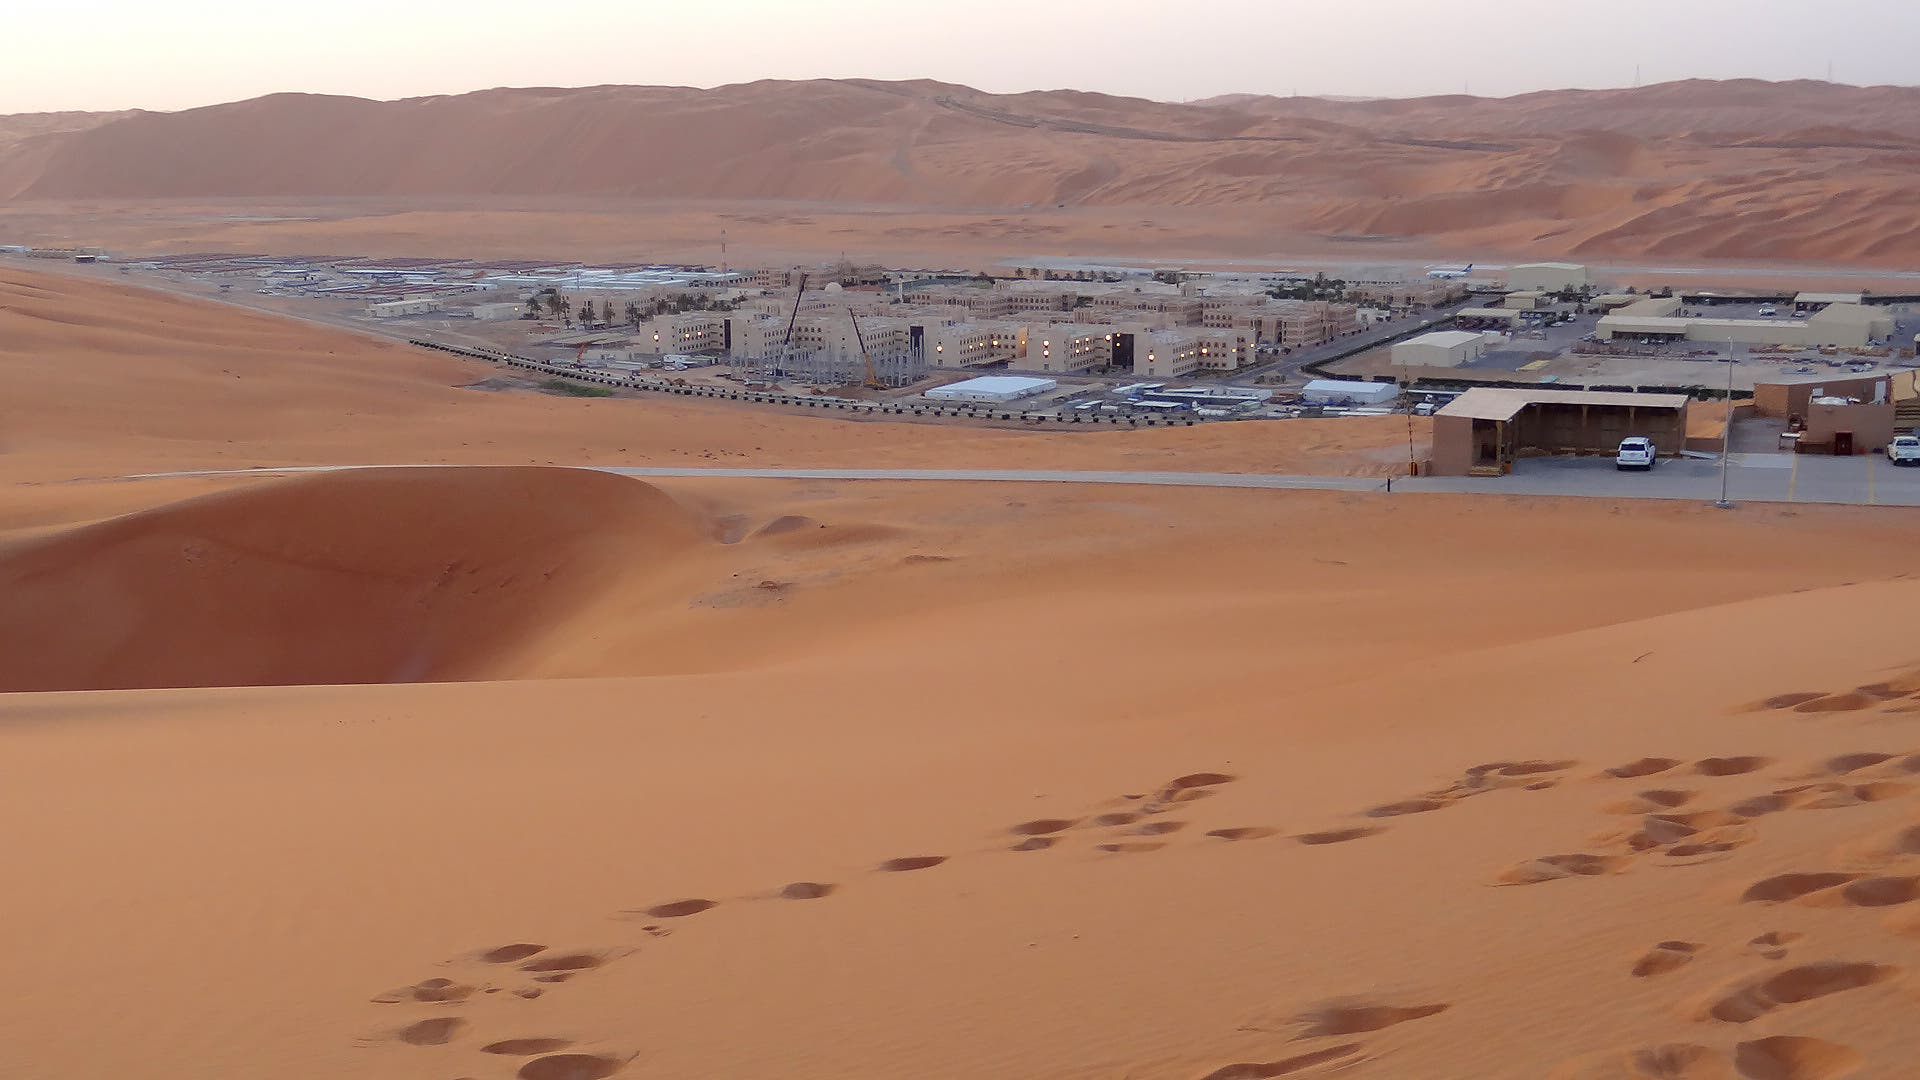 Shaybah, the base for Saudi Aramco's Natural Gas Liquids plant and oil production in Saudi Arabia's remote Empty Quarter desert, on May 10, 2016. (AFP)